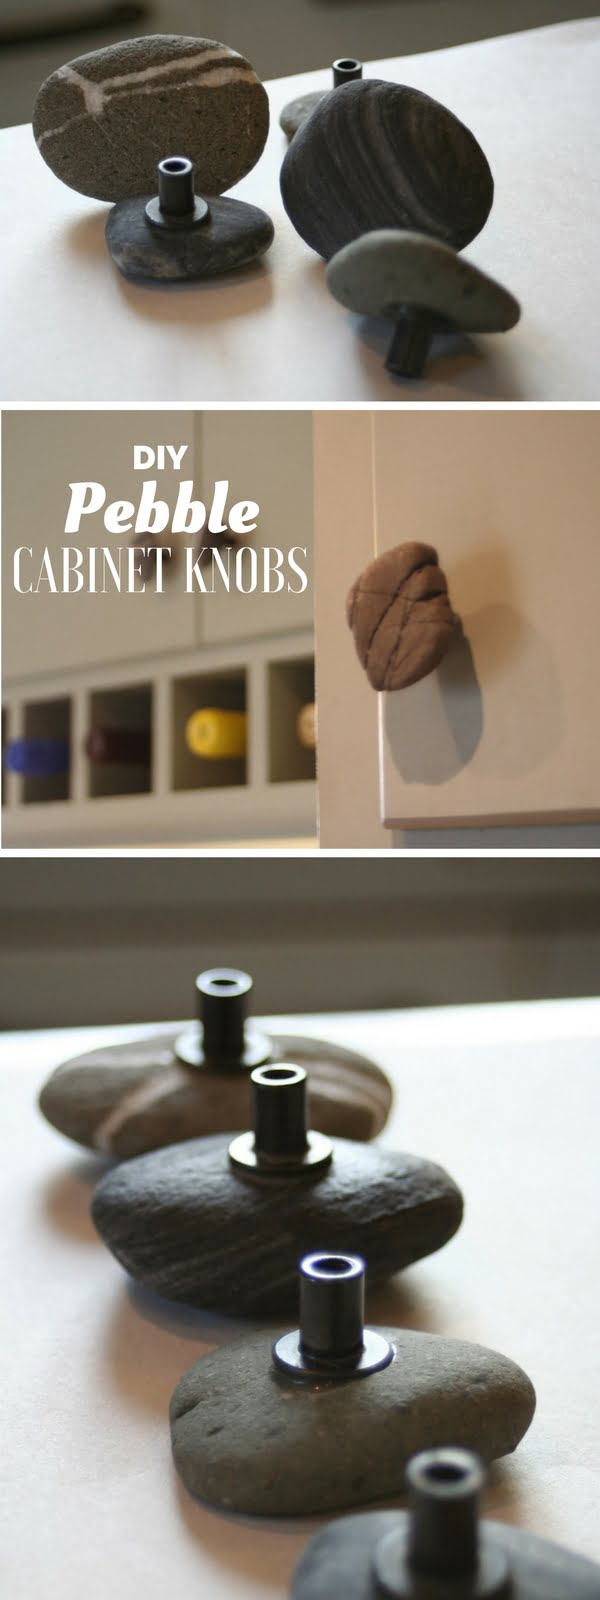 How to make easy DIY cabinet handles from rocks